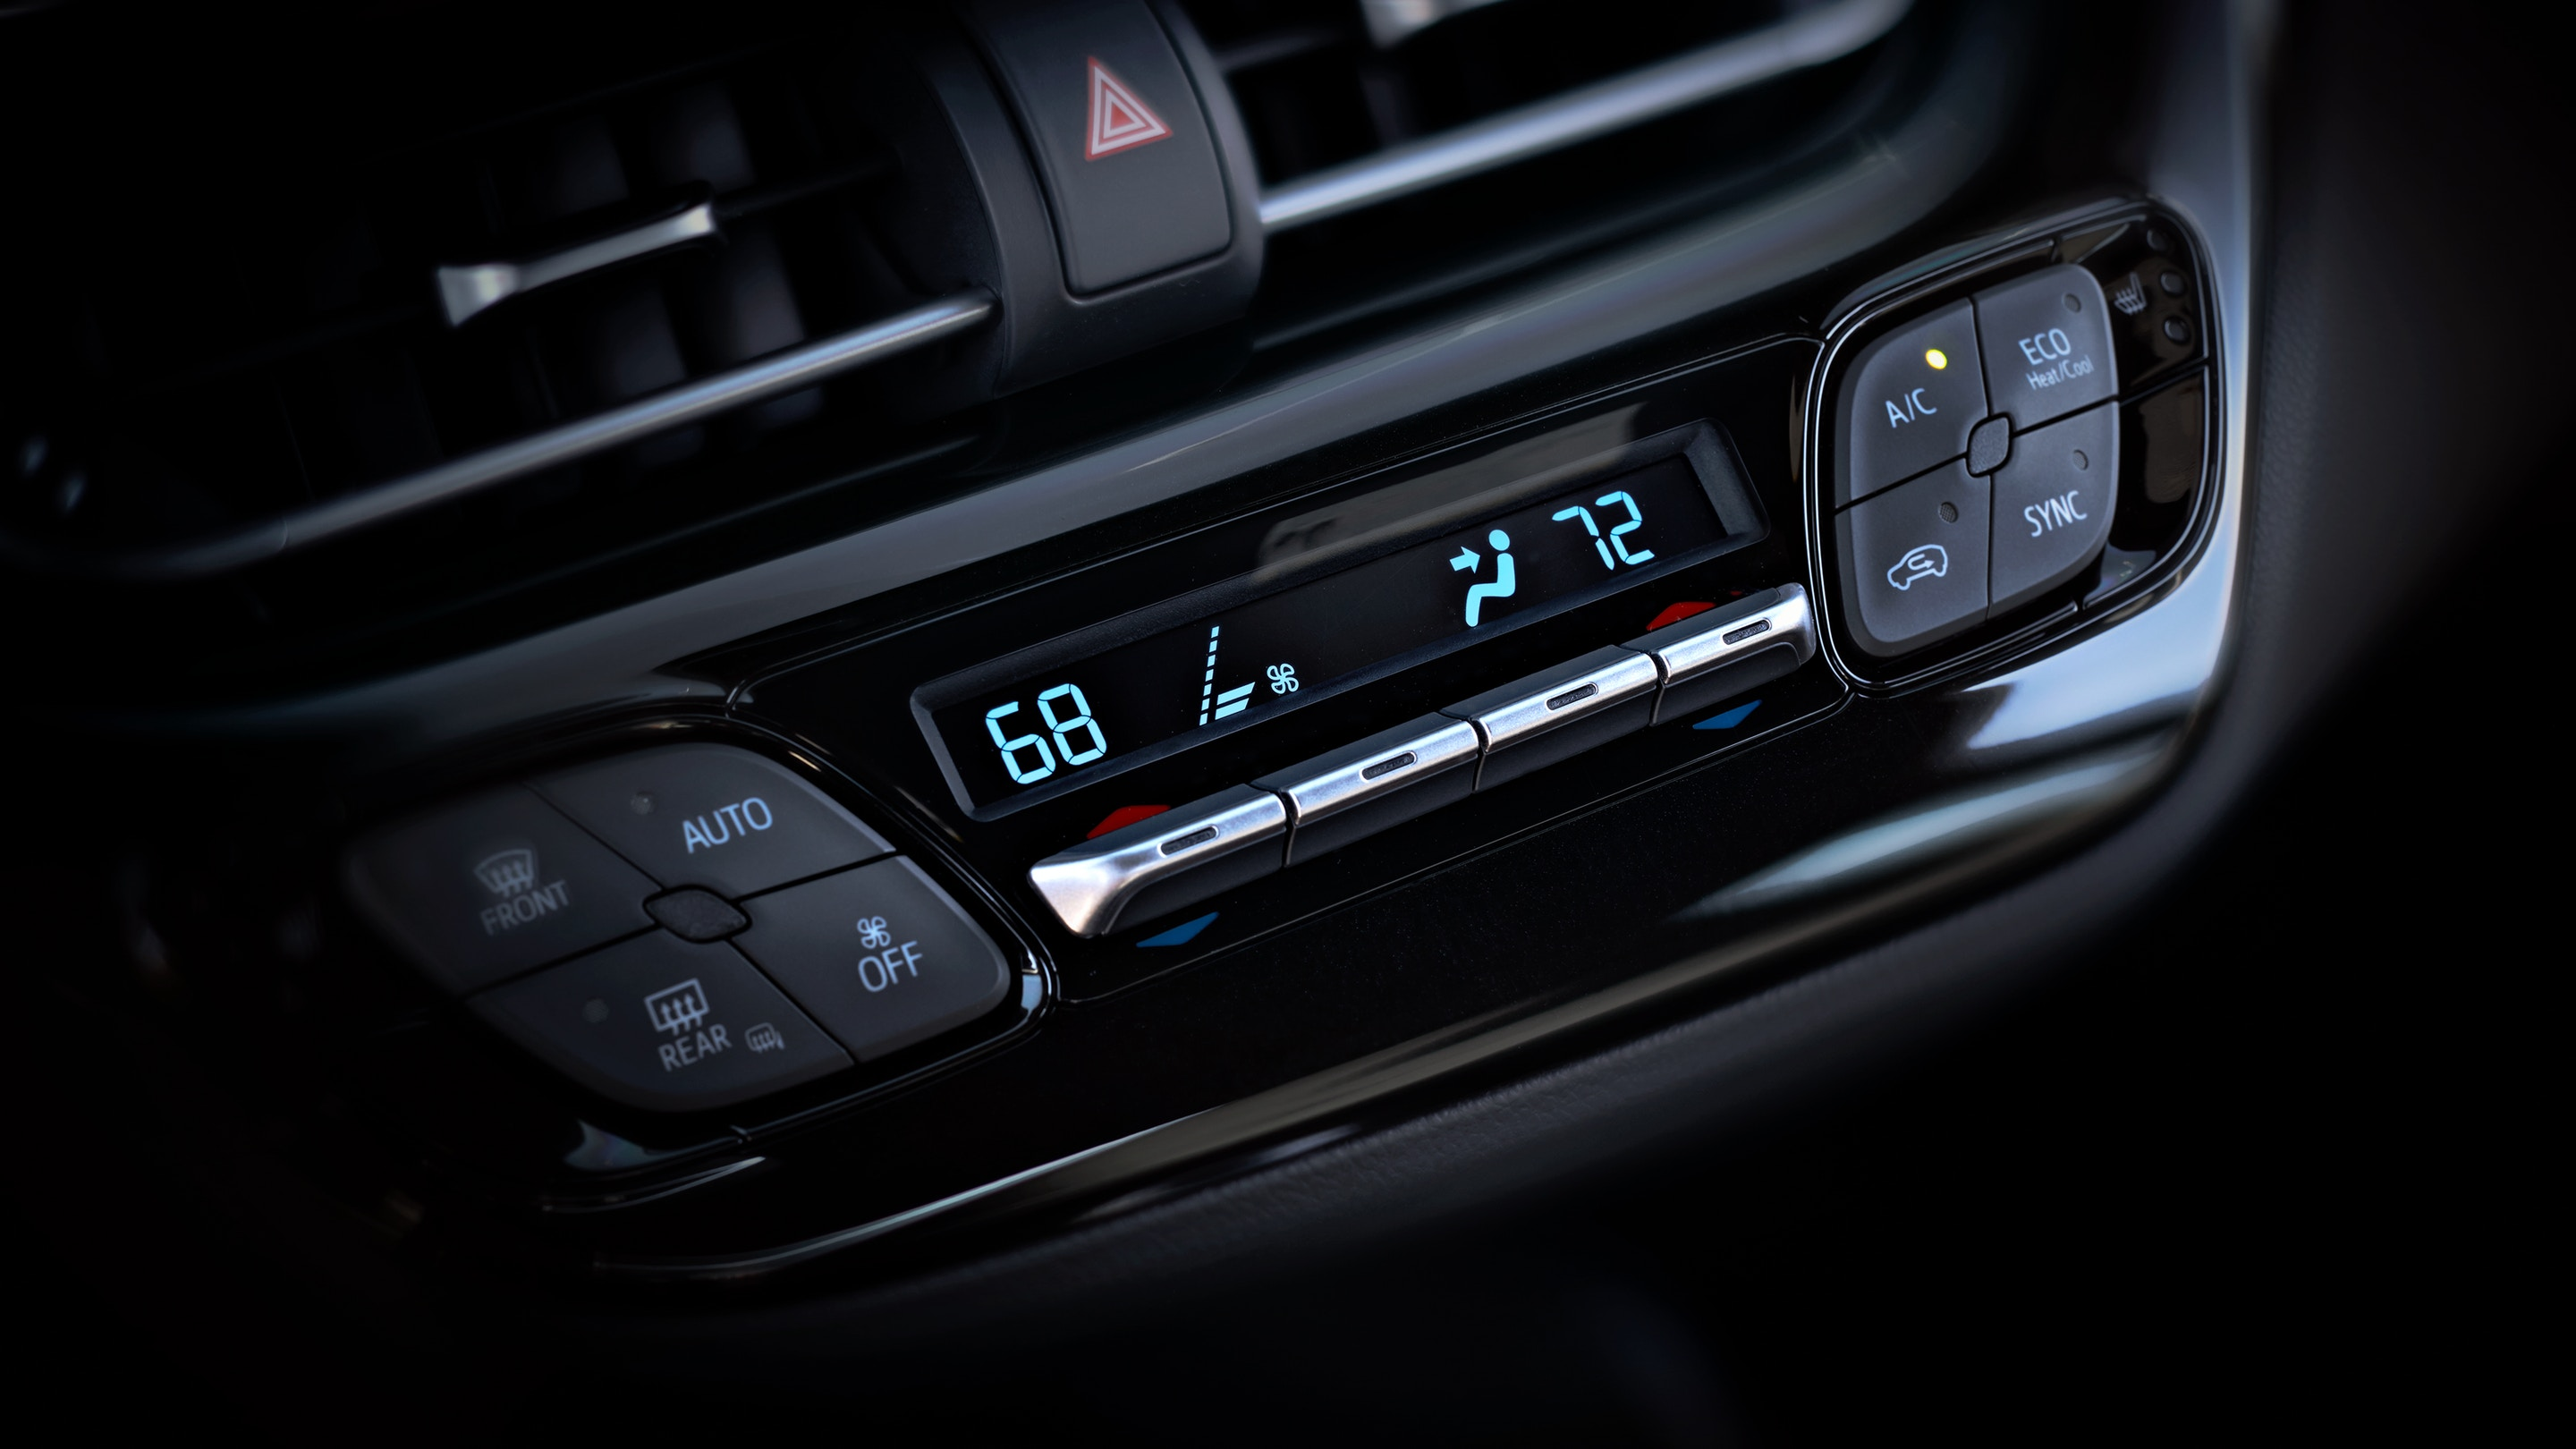 Climate Control in the C-HR